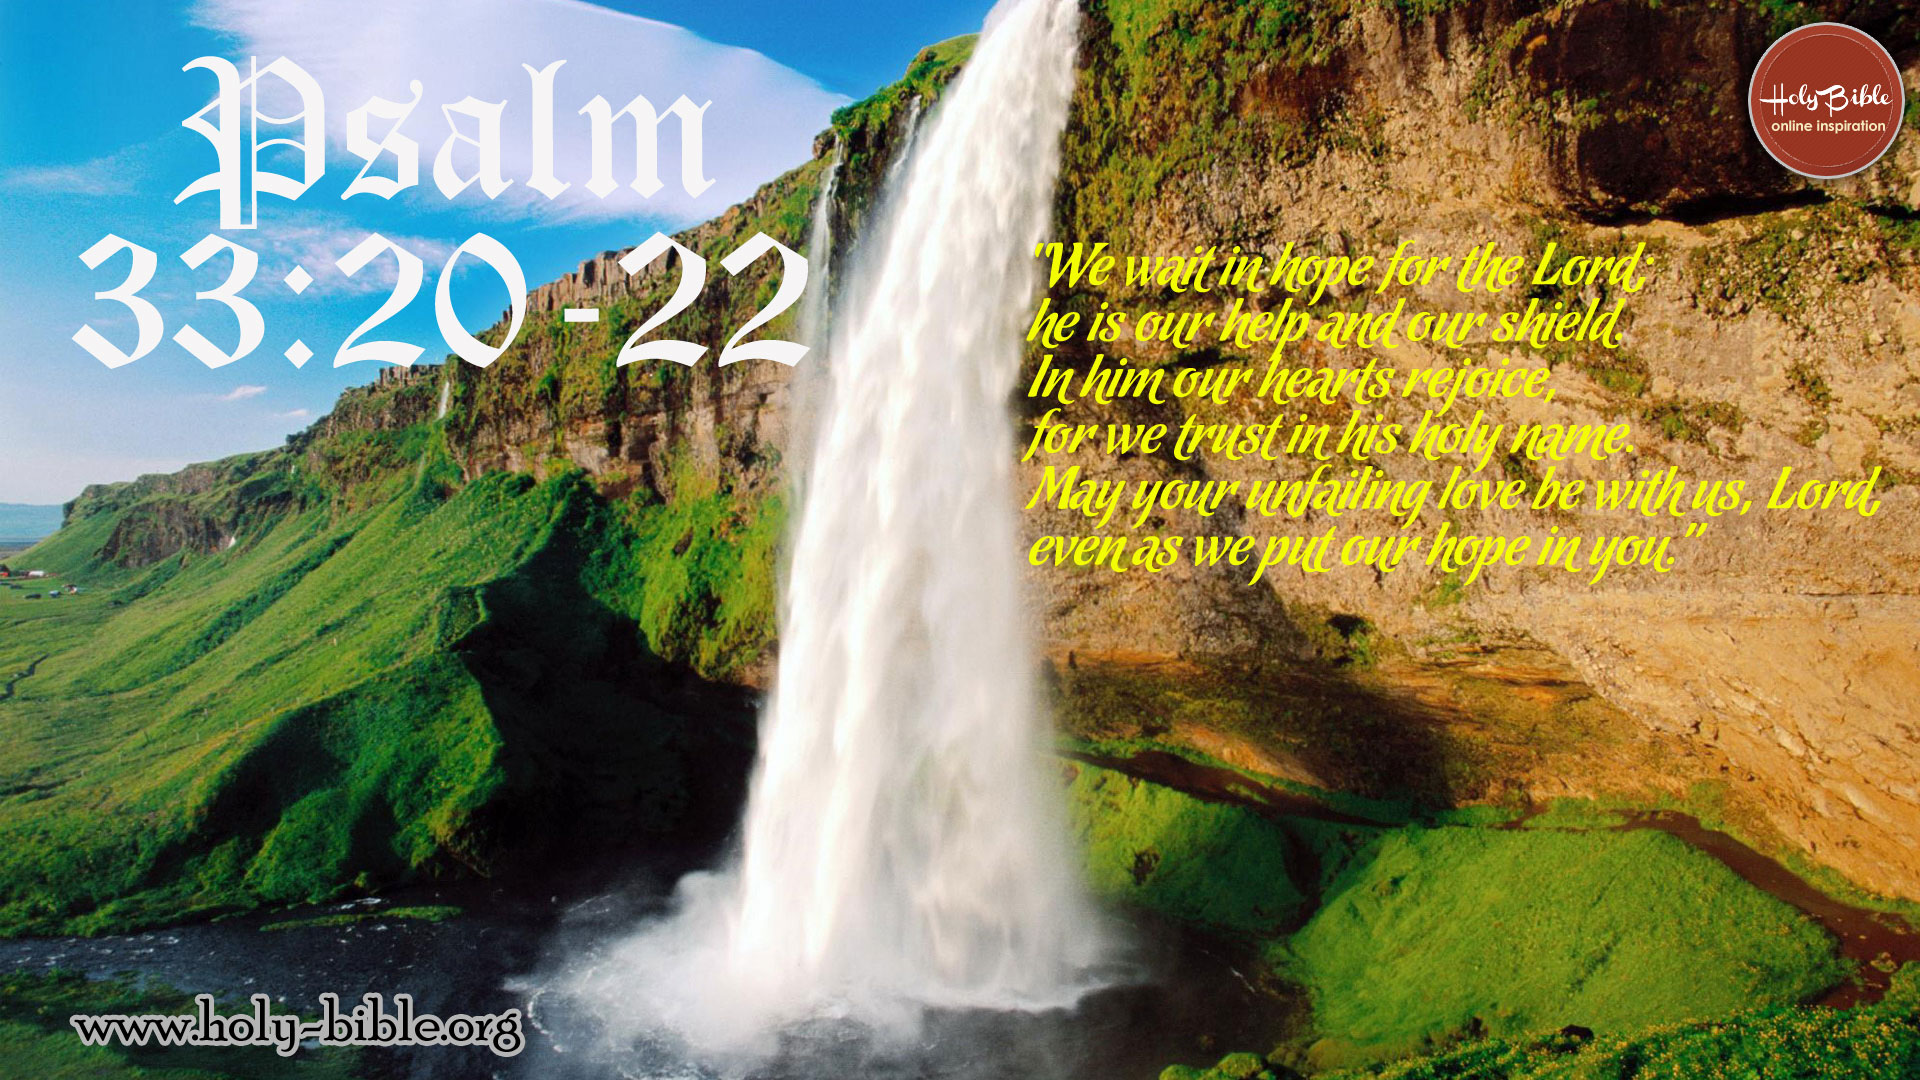 Bible Verse of the day - Psalm 33:20-22